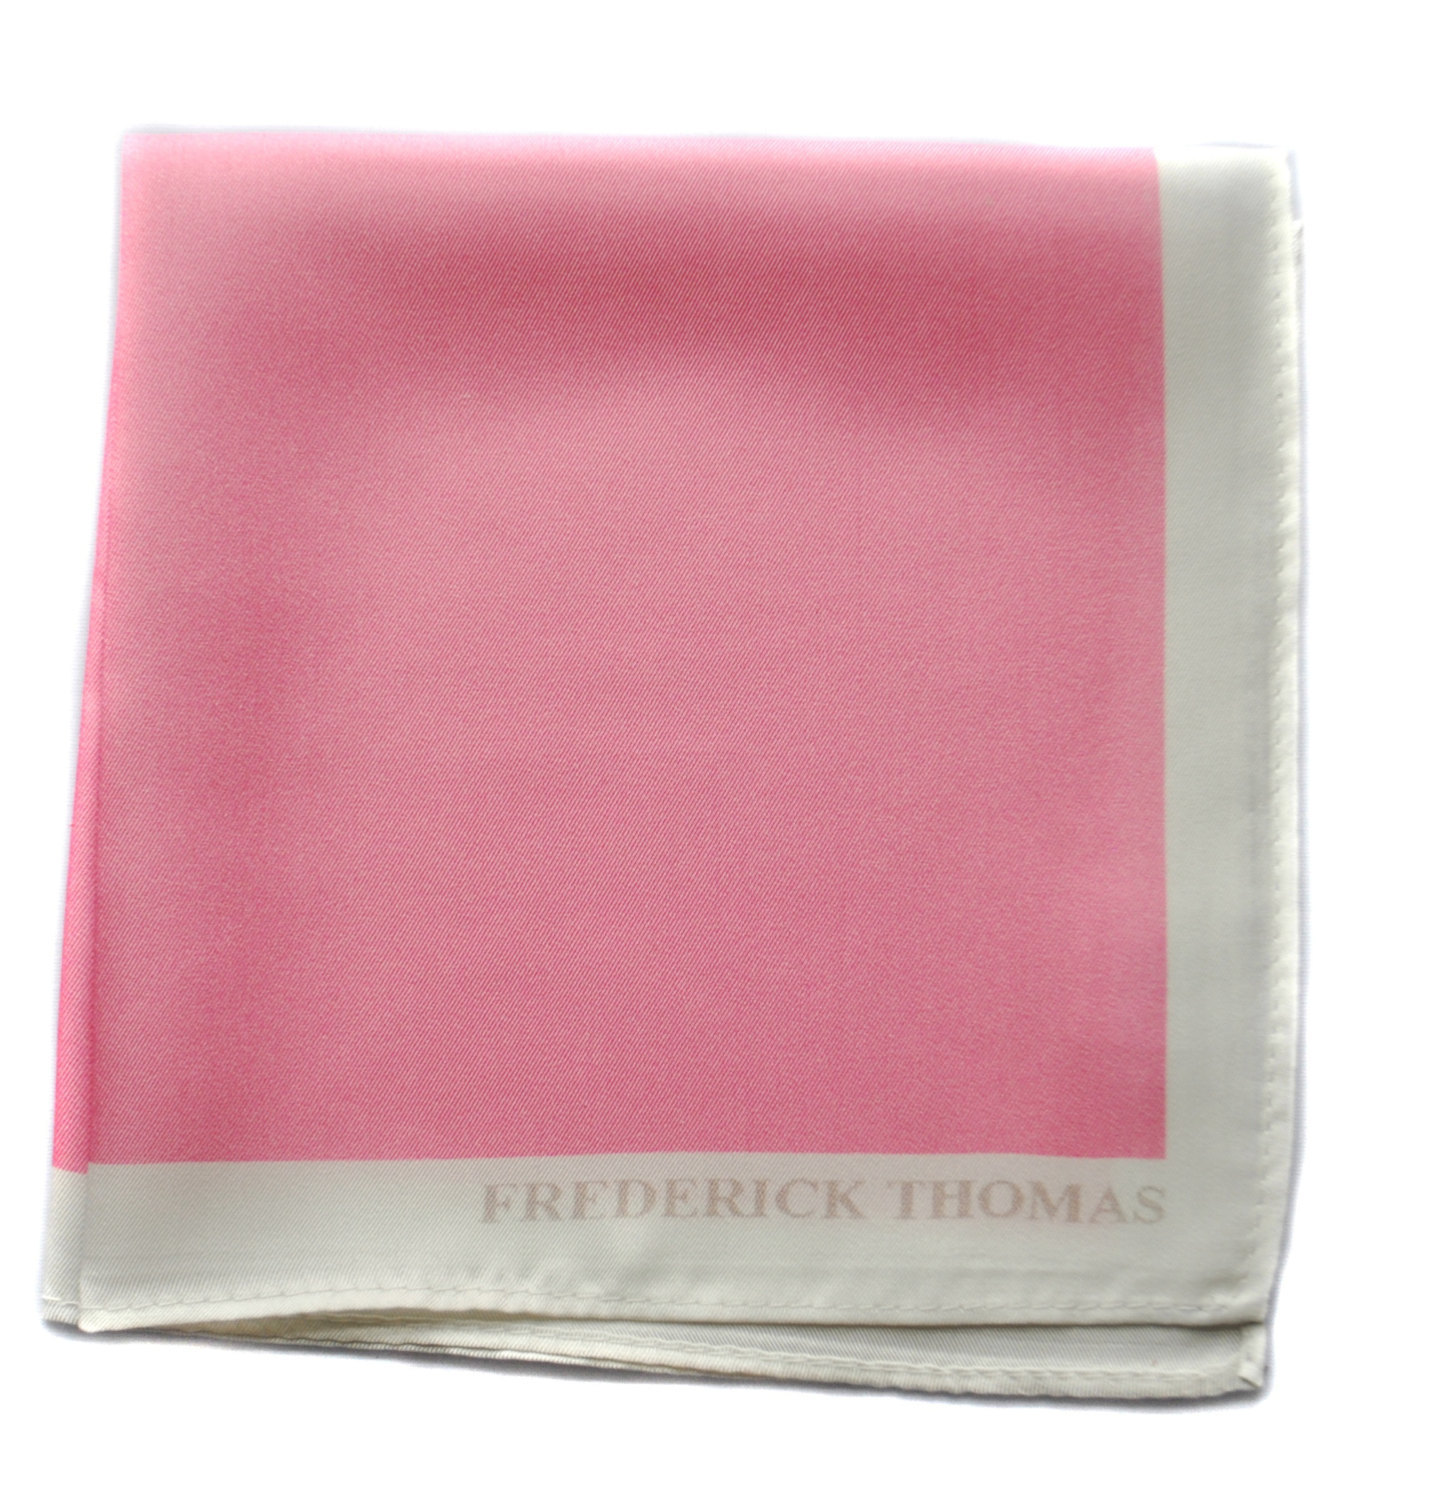 Frederick Thomas pale pink pocket square with white edging FT1666